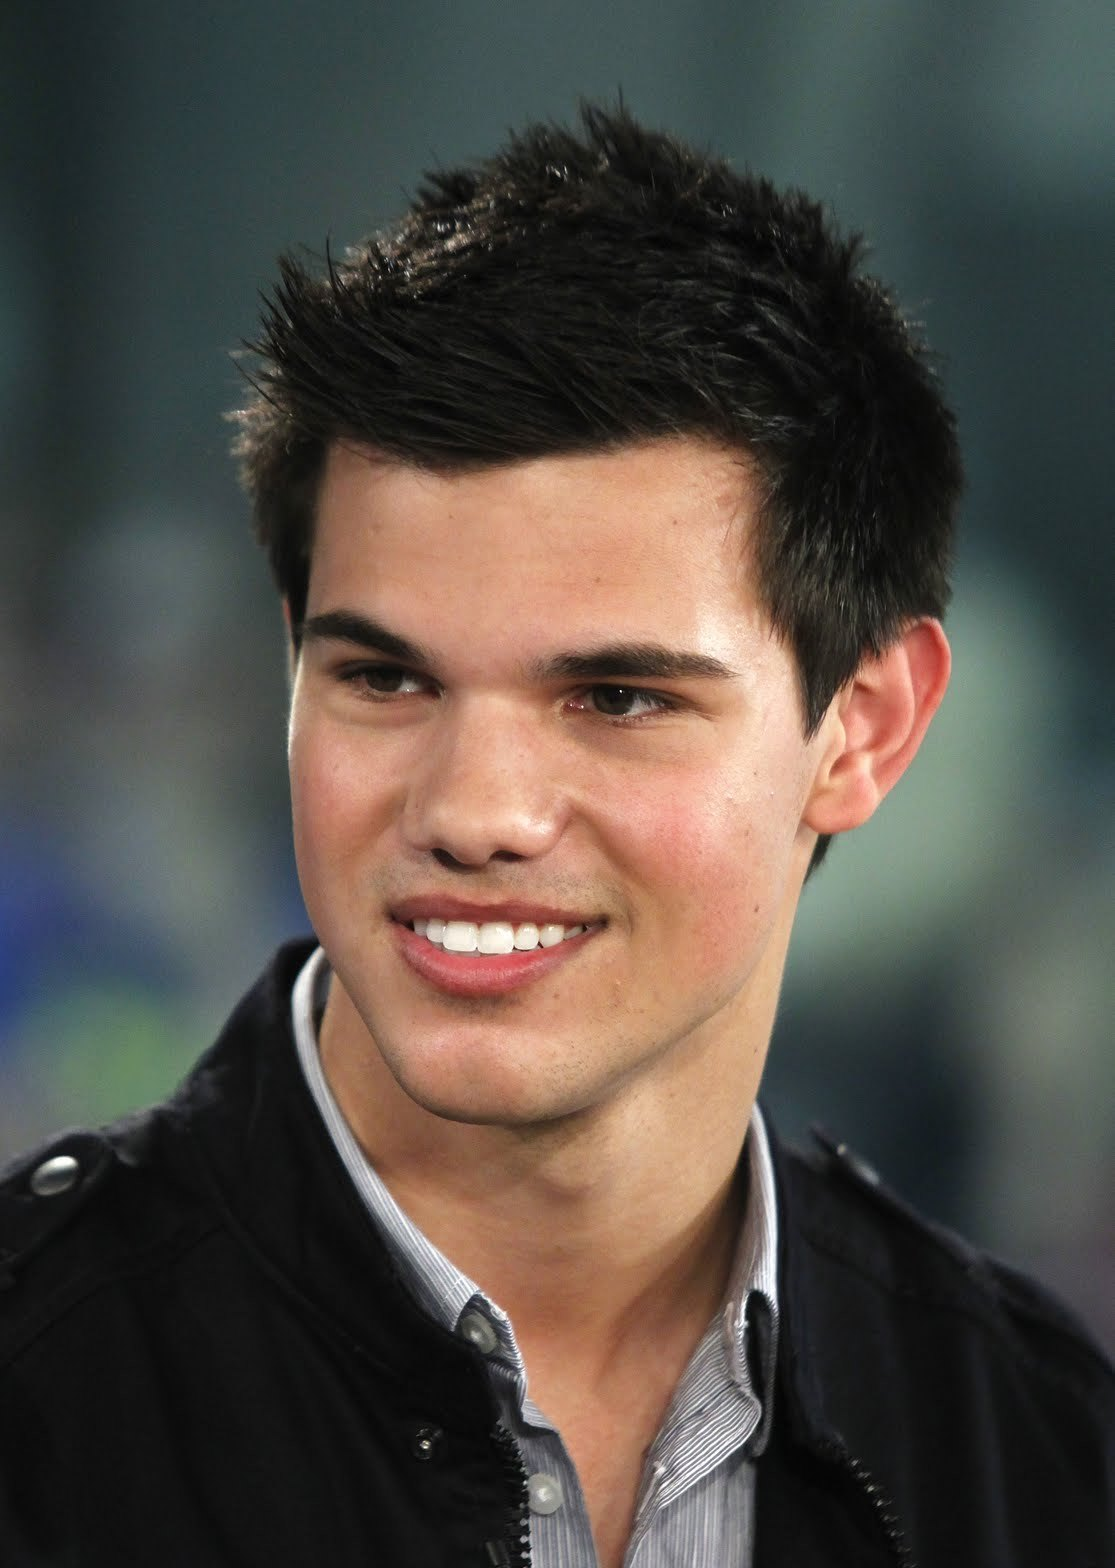 Pictures Of Taylor Lautner 31